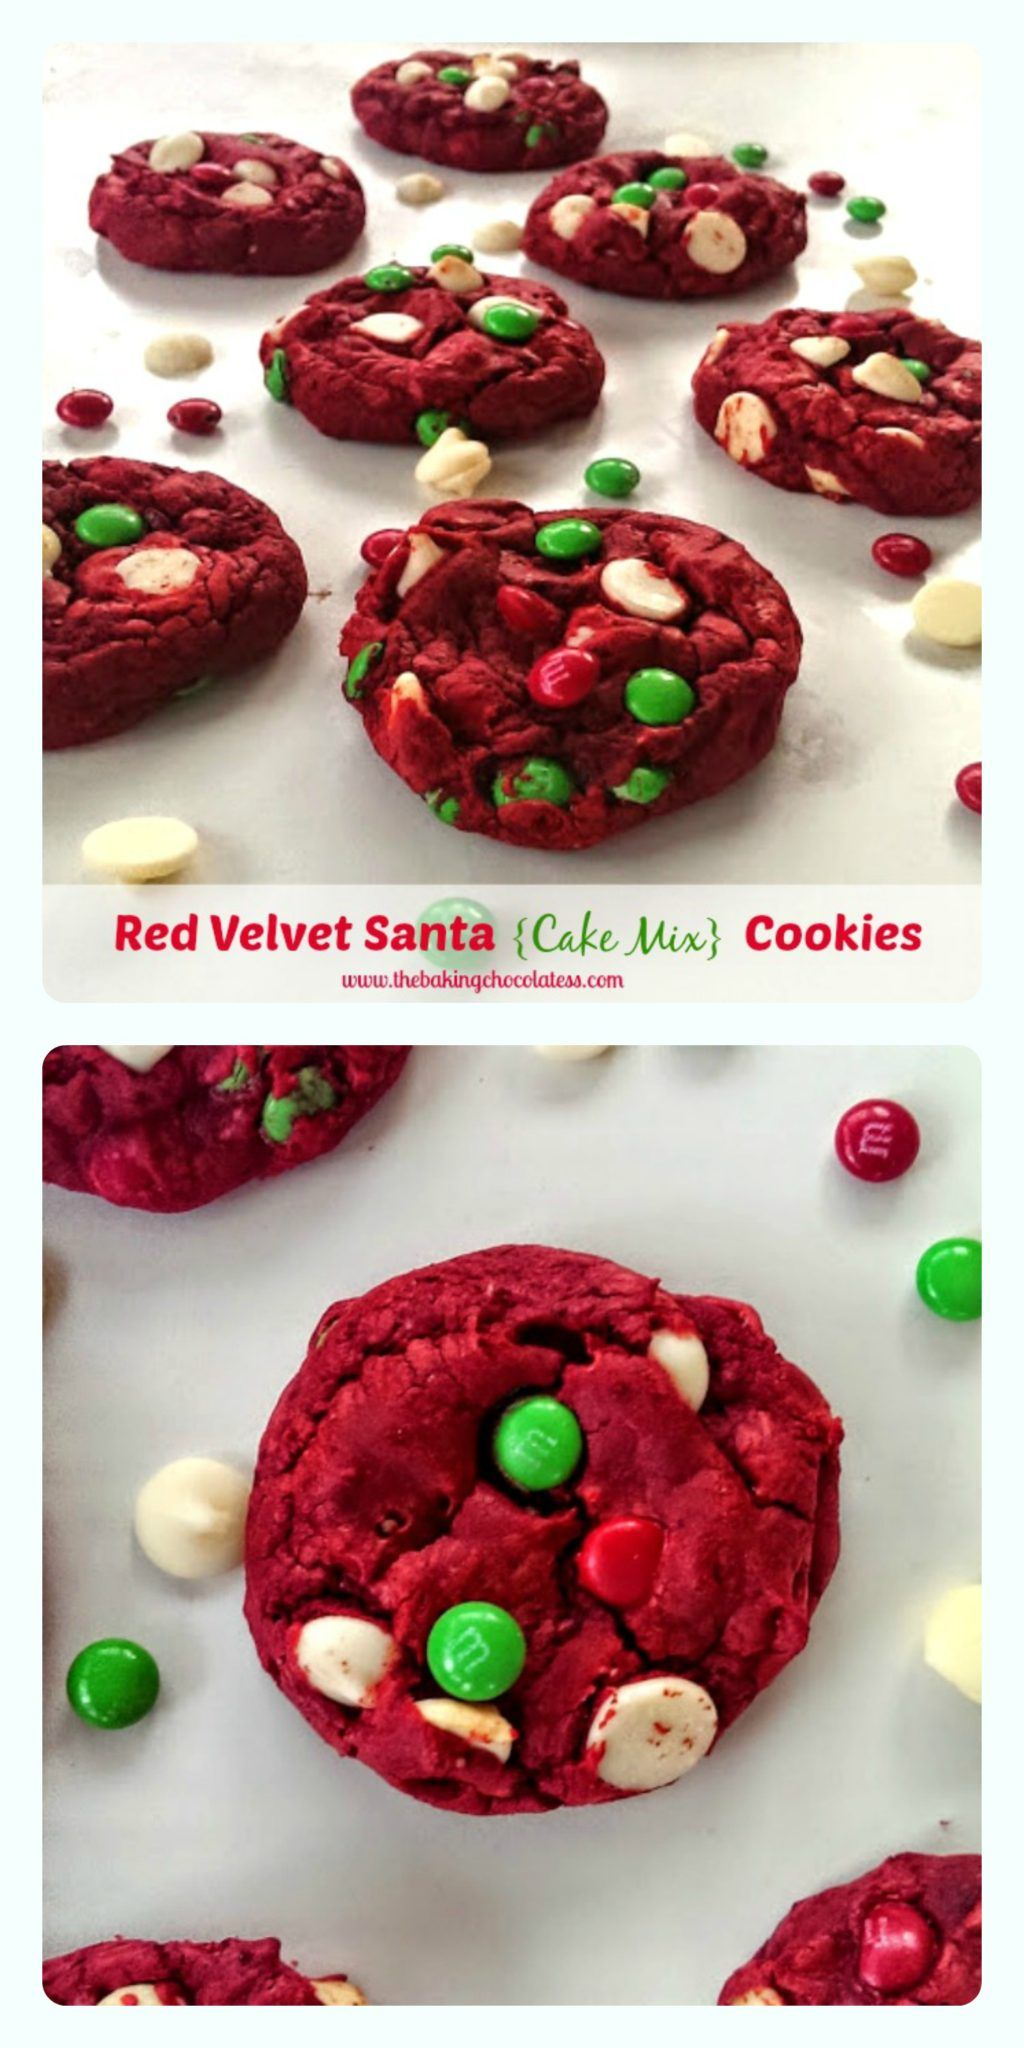 Red Velvet Santa (Cake Mix) Cookies Recipe Cake mix